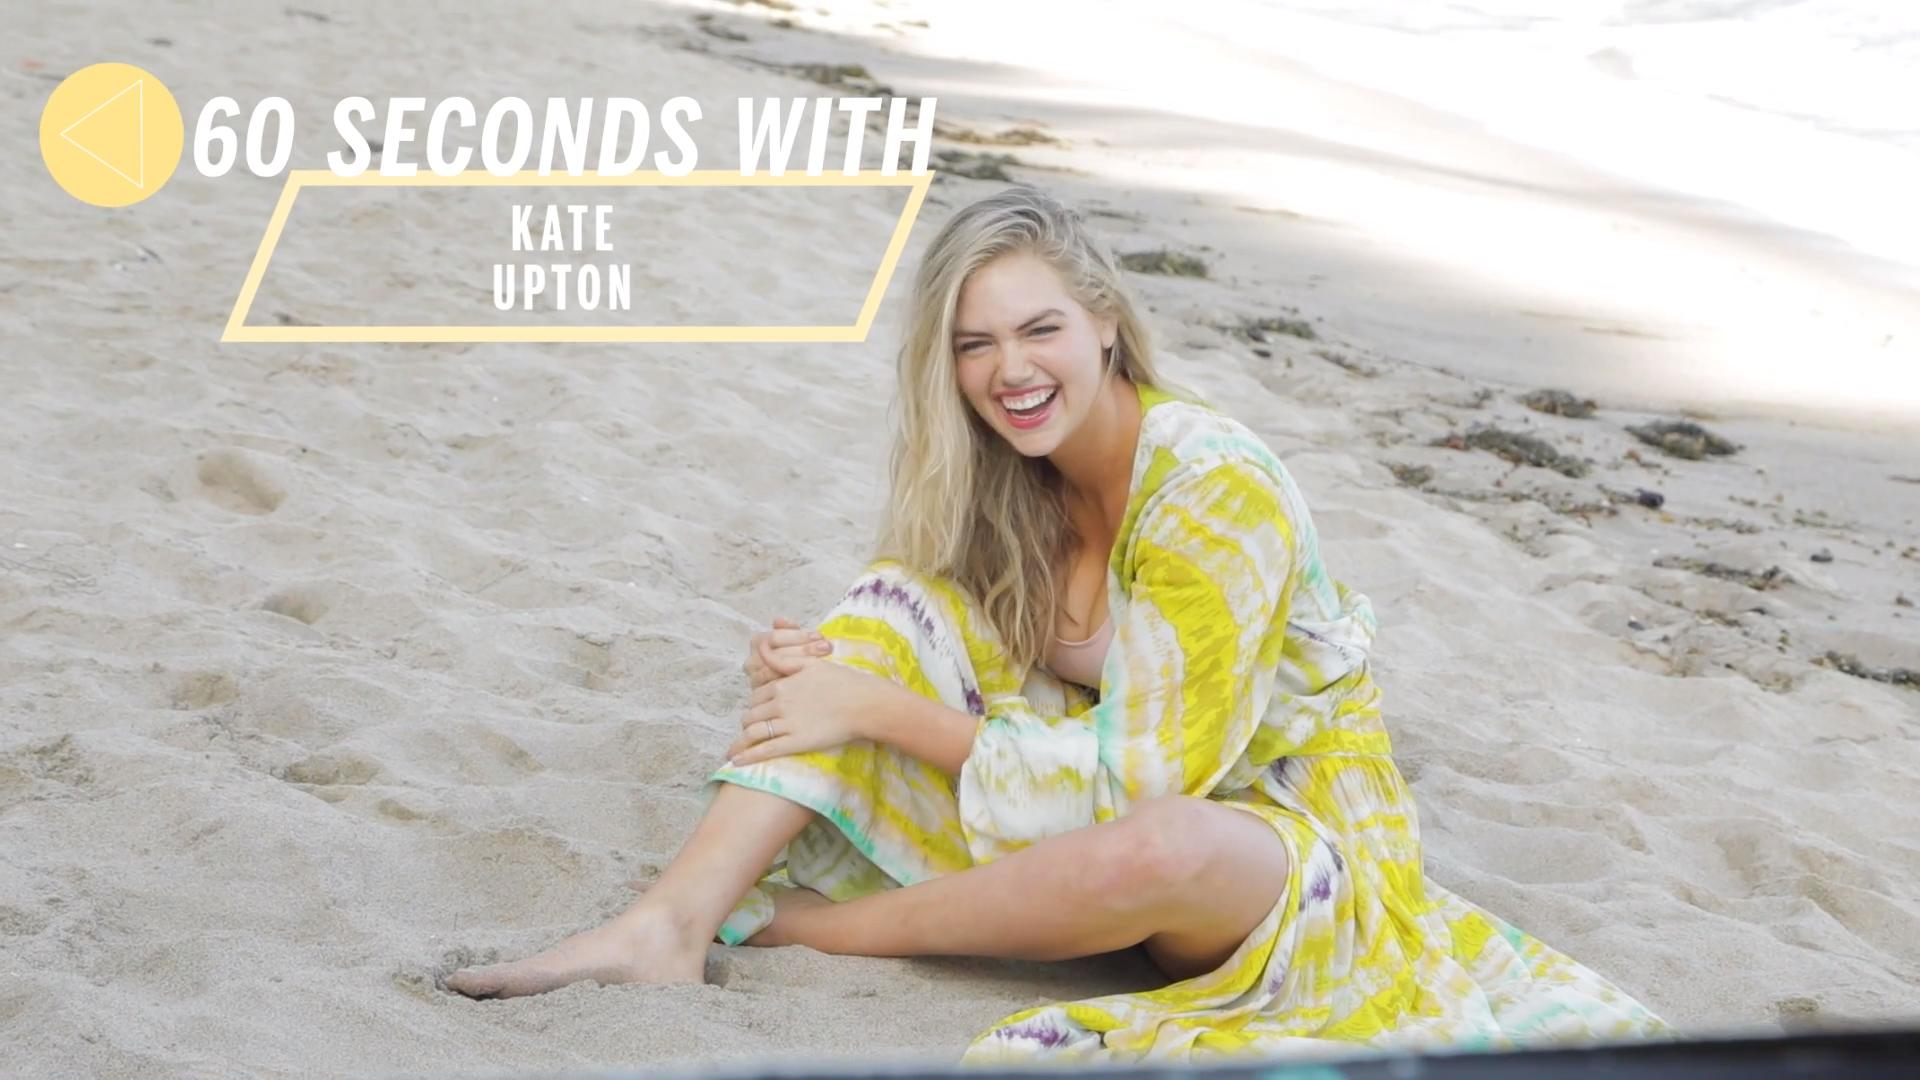 Kate Upton Poses in Unretouched Photos to Call BS on Weight Loss Culture